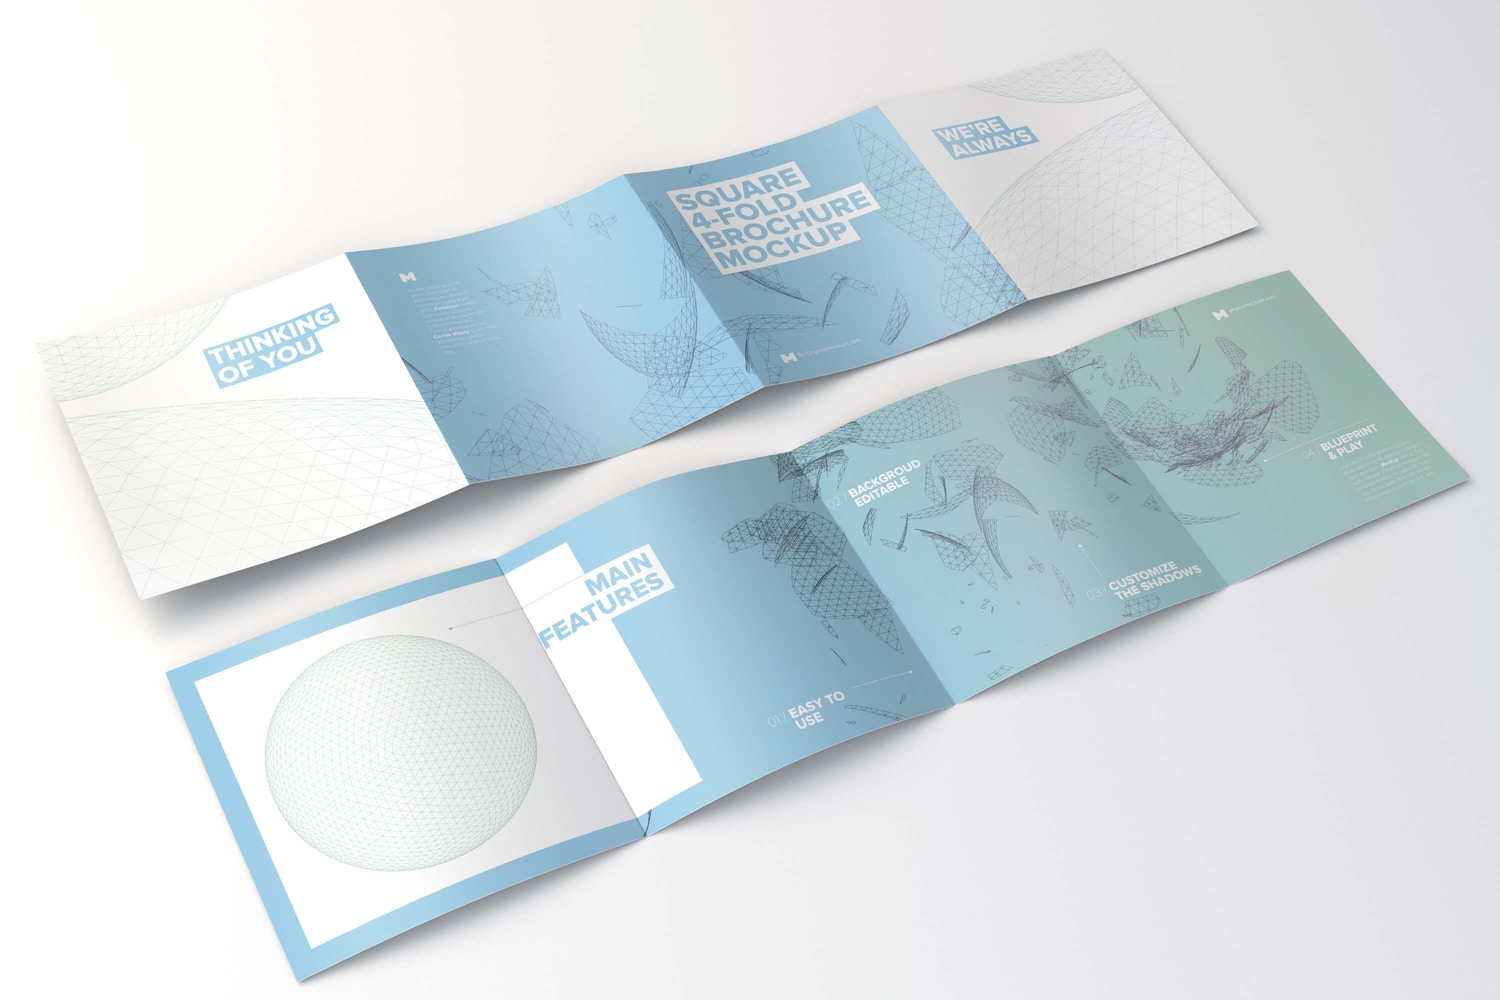 Spread Square 4-Fold Brochure Outside and Inside Mockup 01